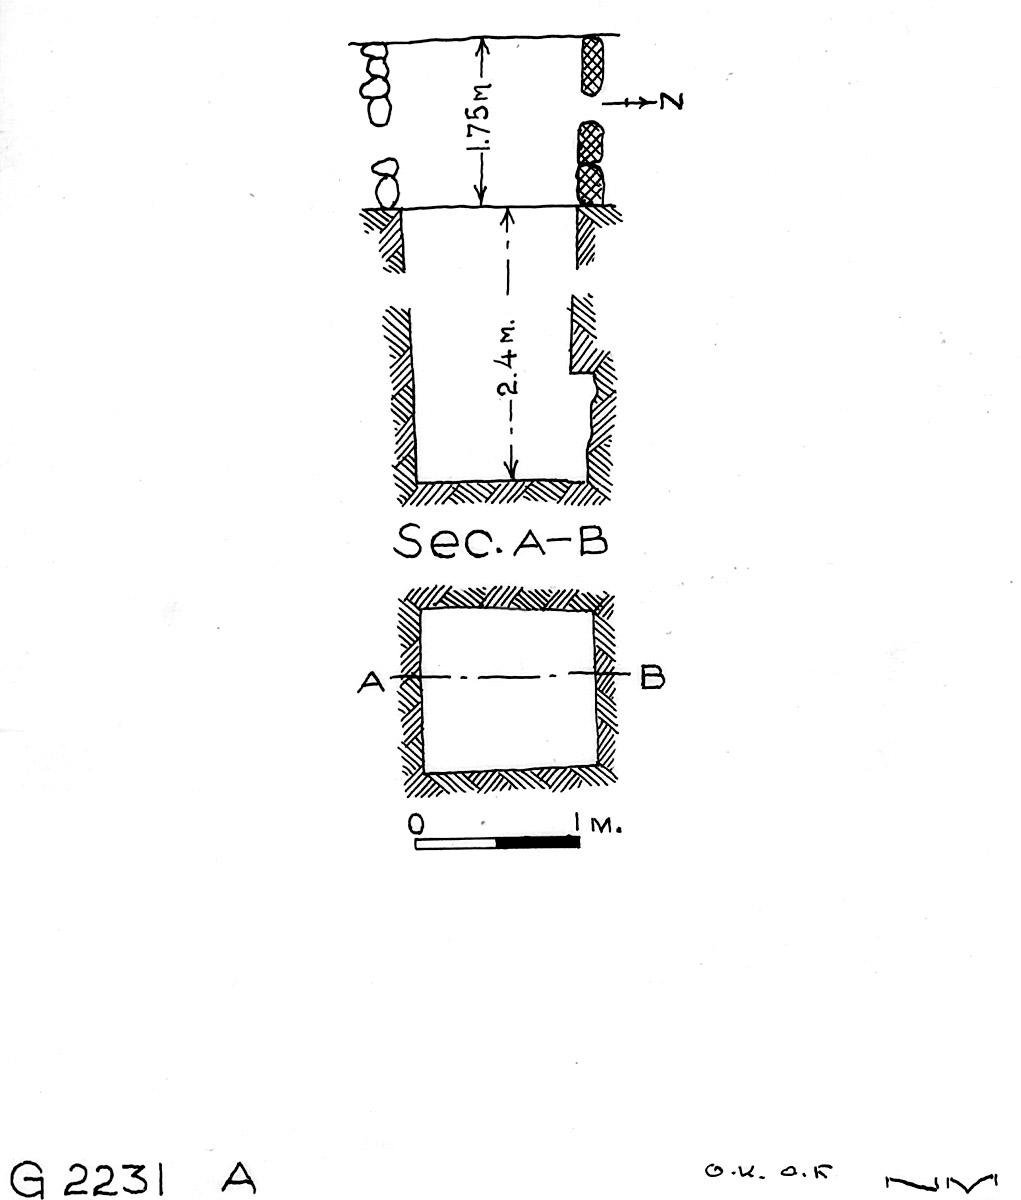 Maps and plans: G 2230+2231: G 2231, Shaft A